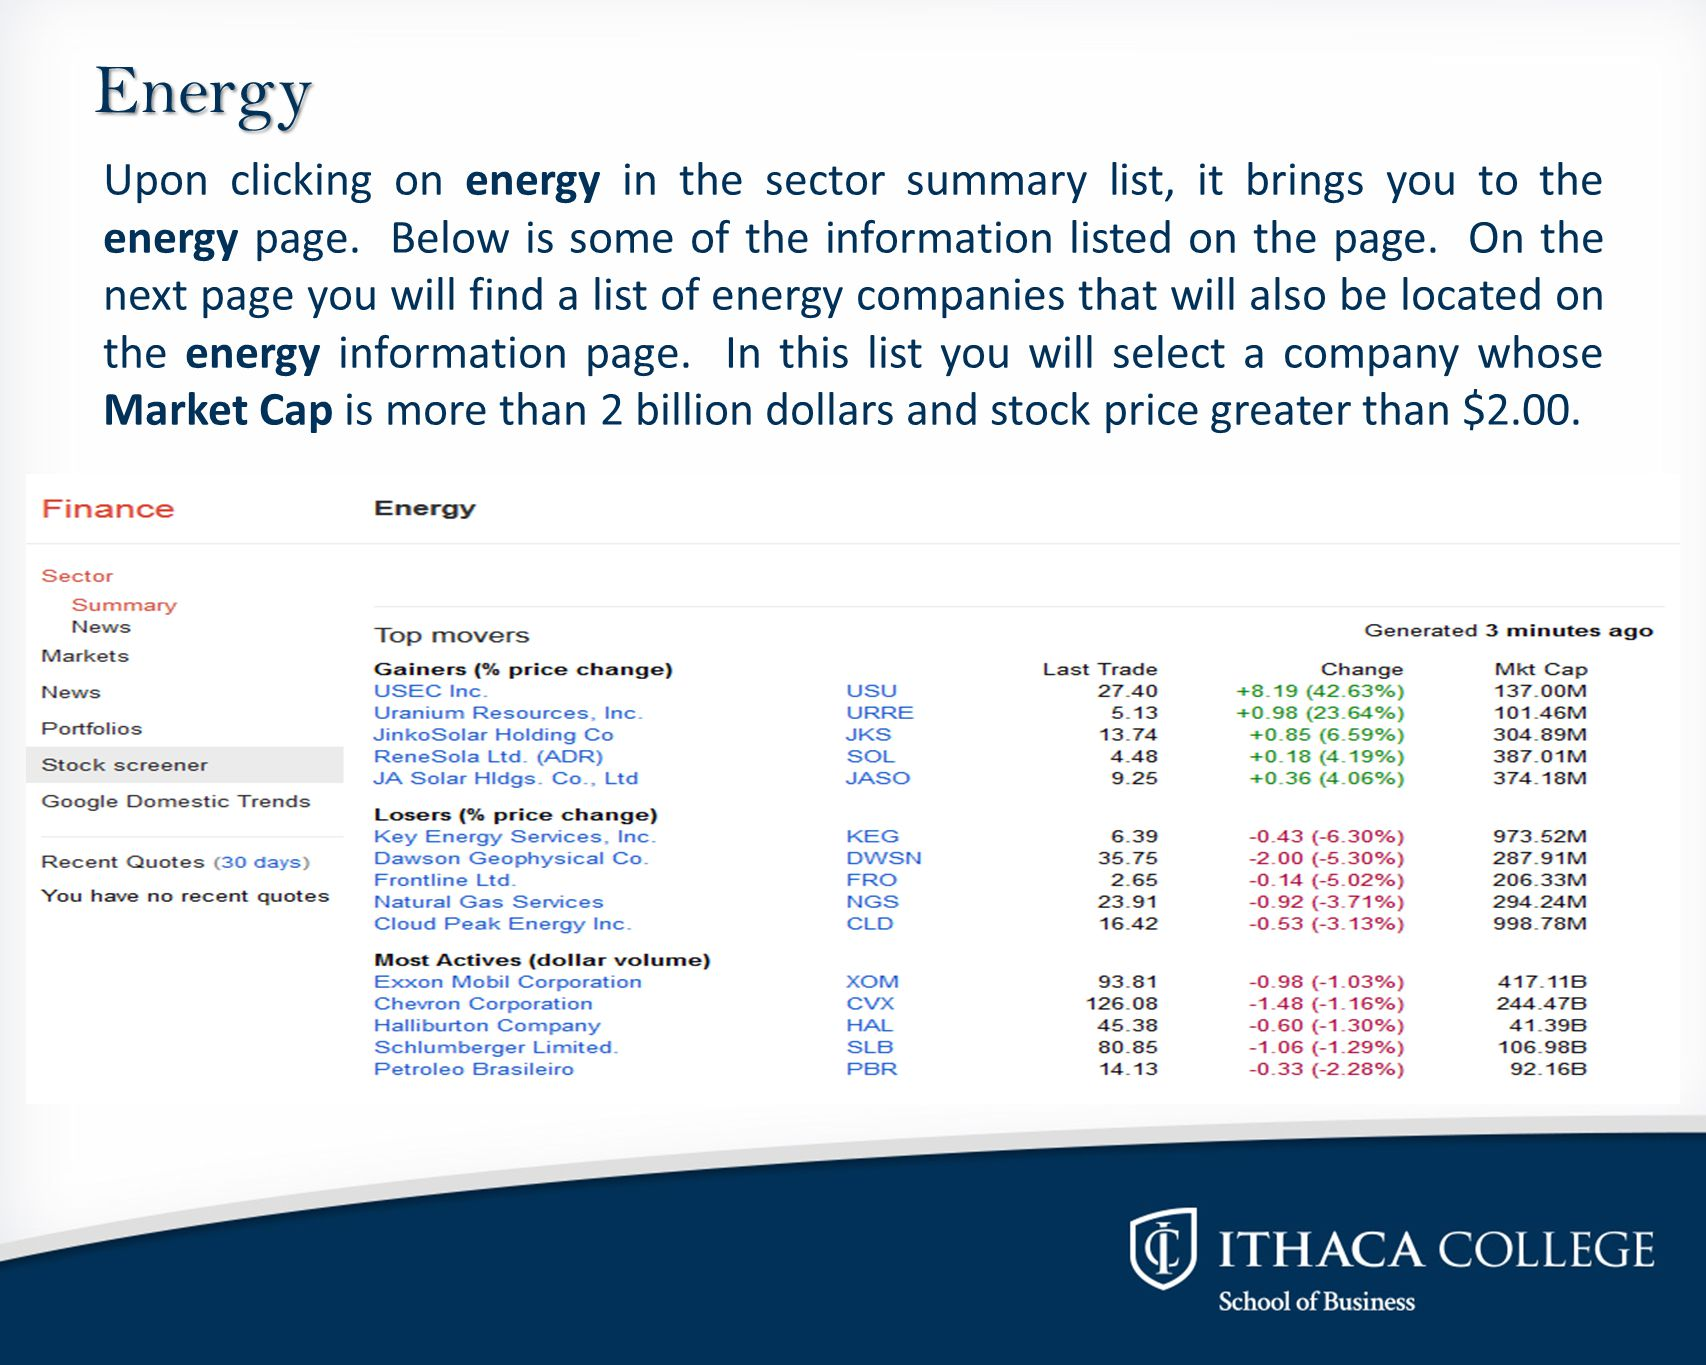 Energy Upon clicking on energy in the sector summary list, it brings you to the energy page.